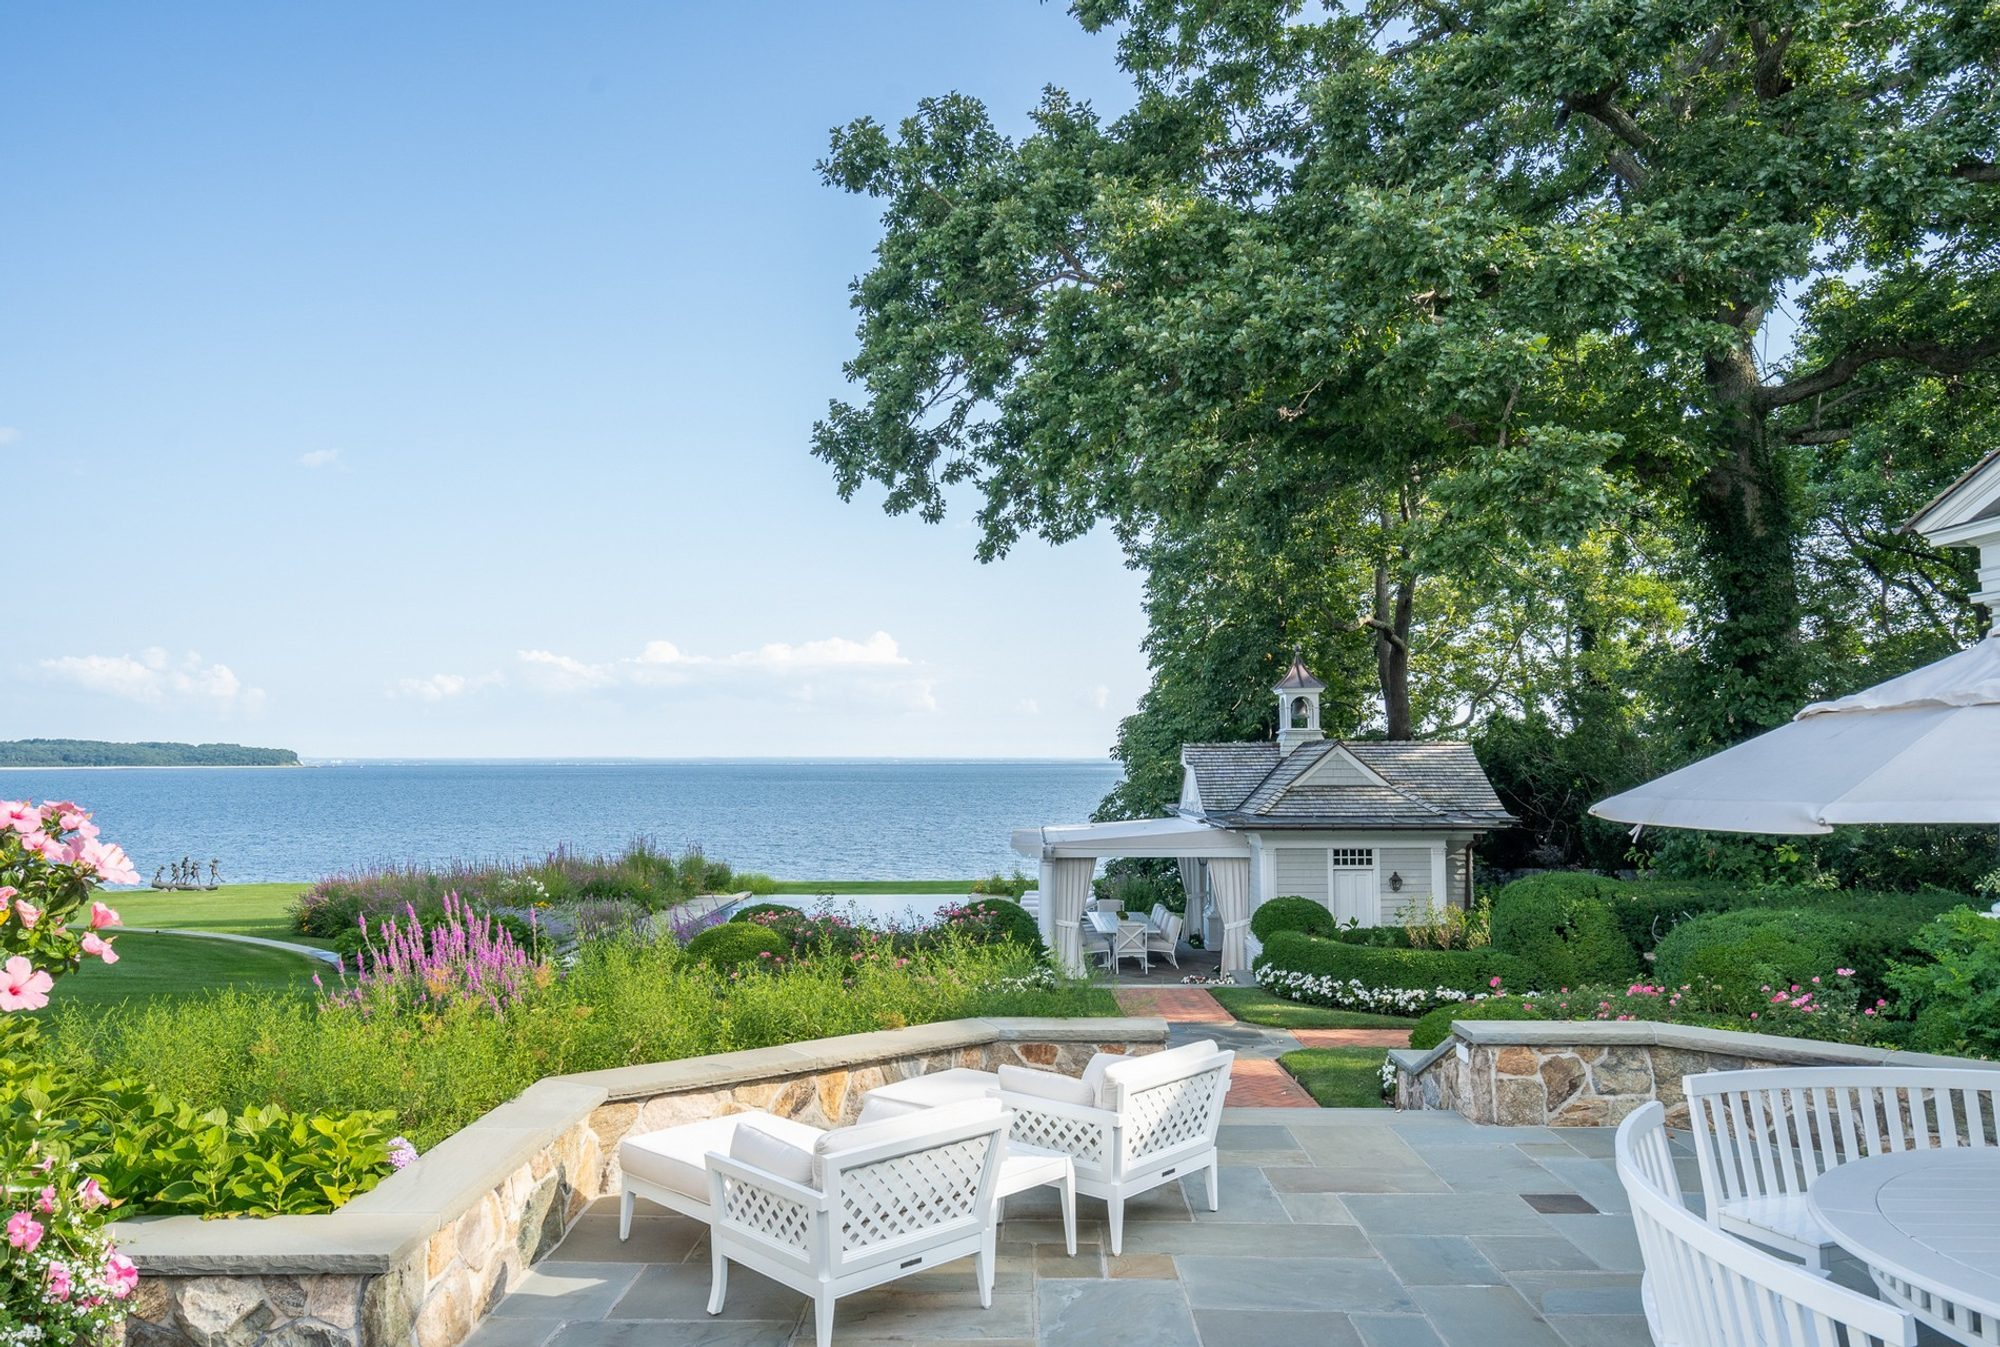 Waterfront bluestone patio with real stone retaining walls and a limestone cap.